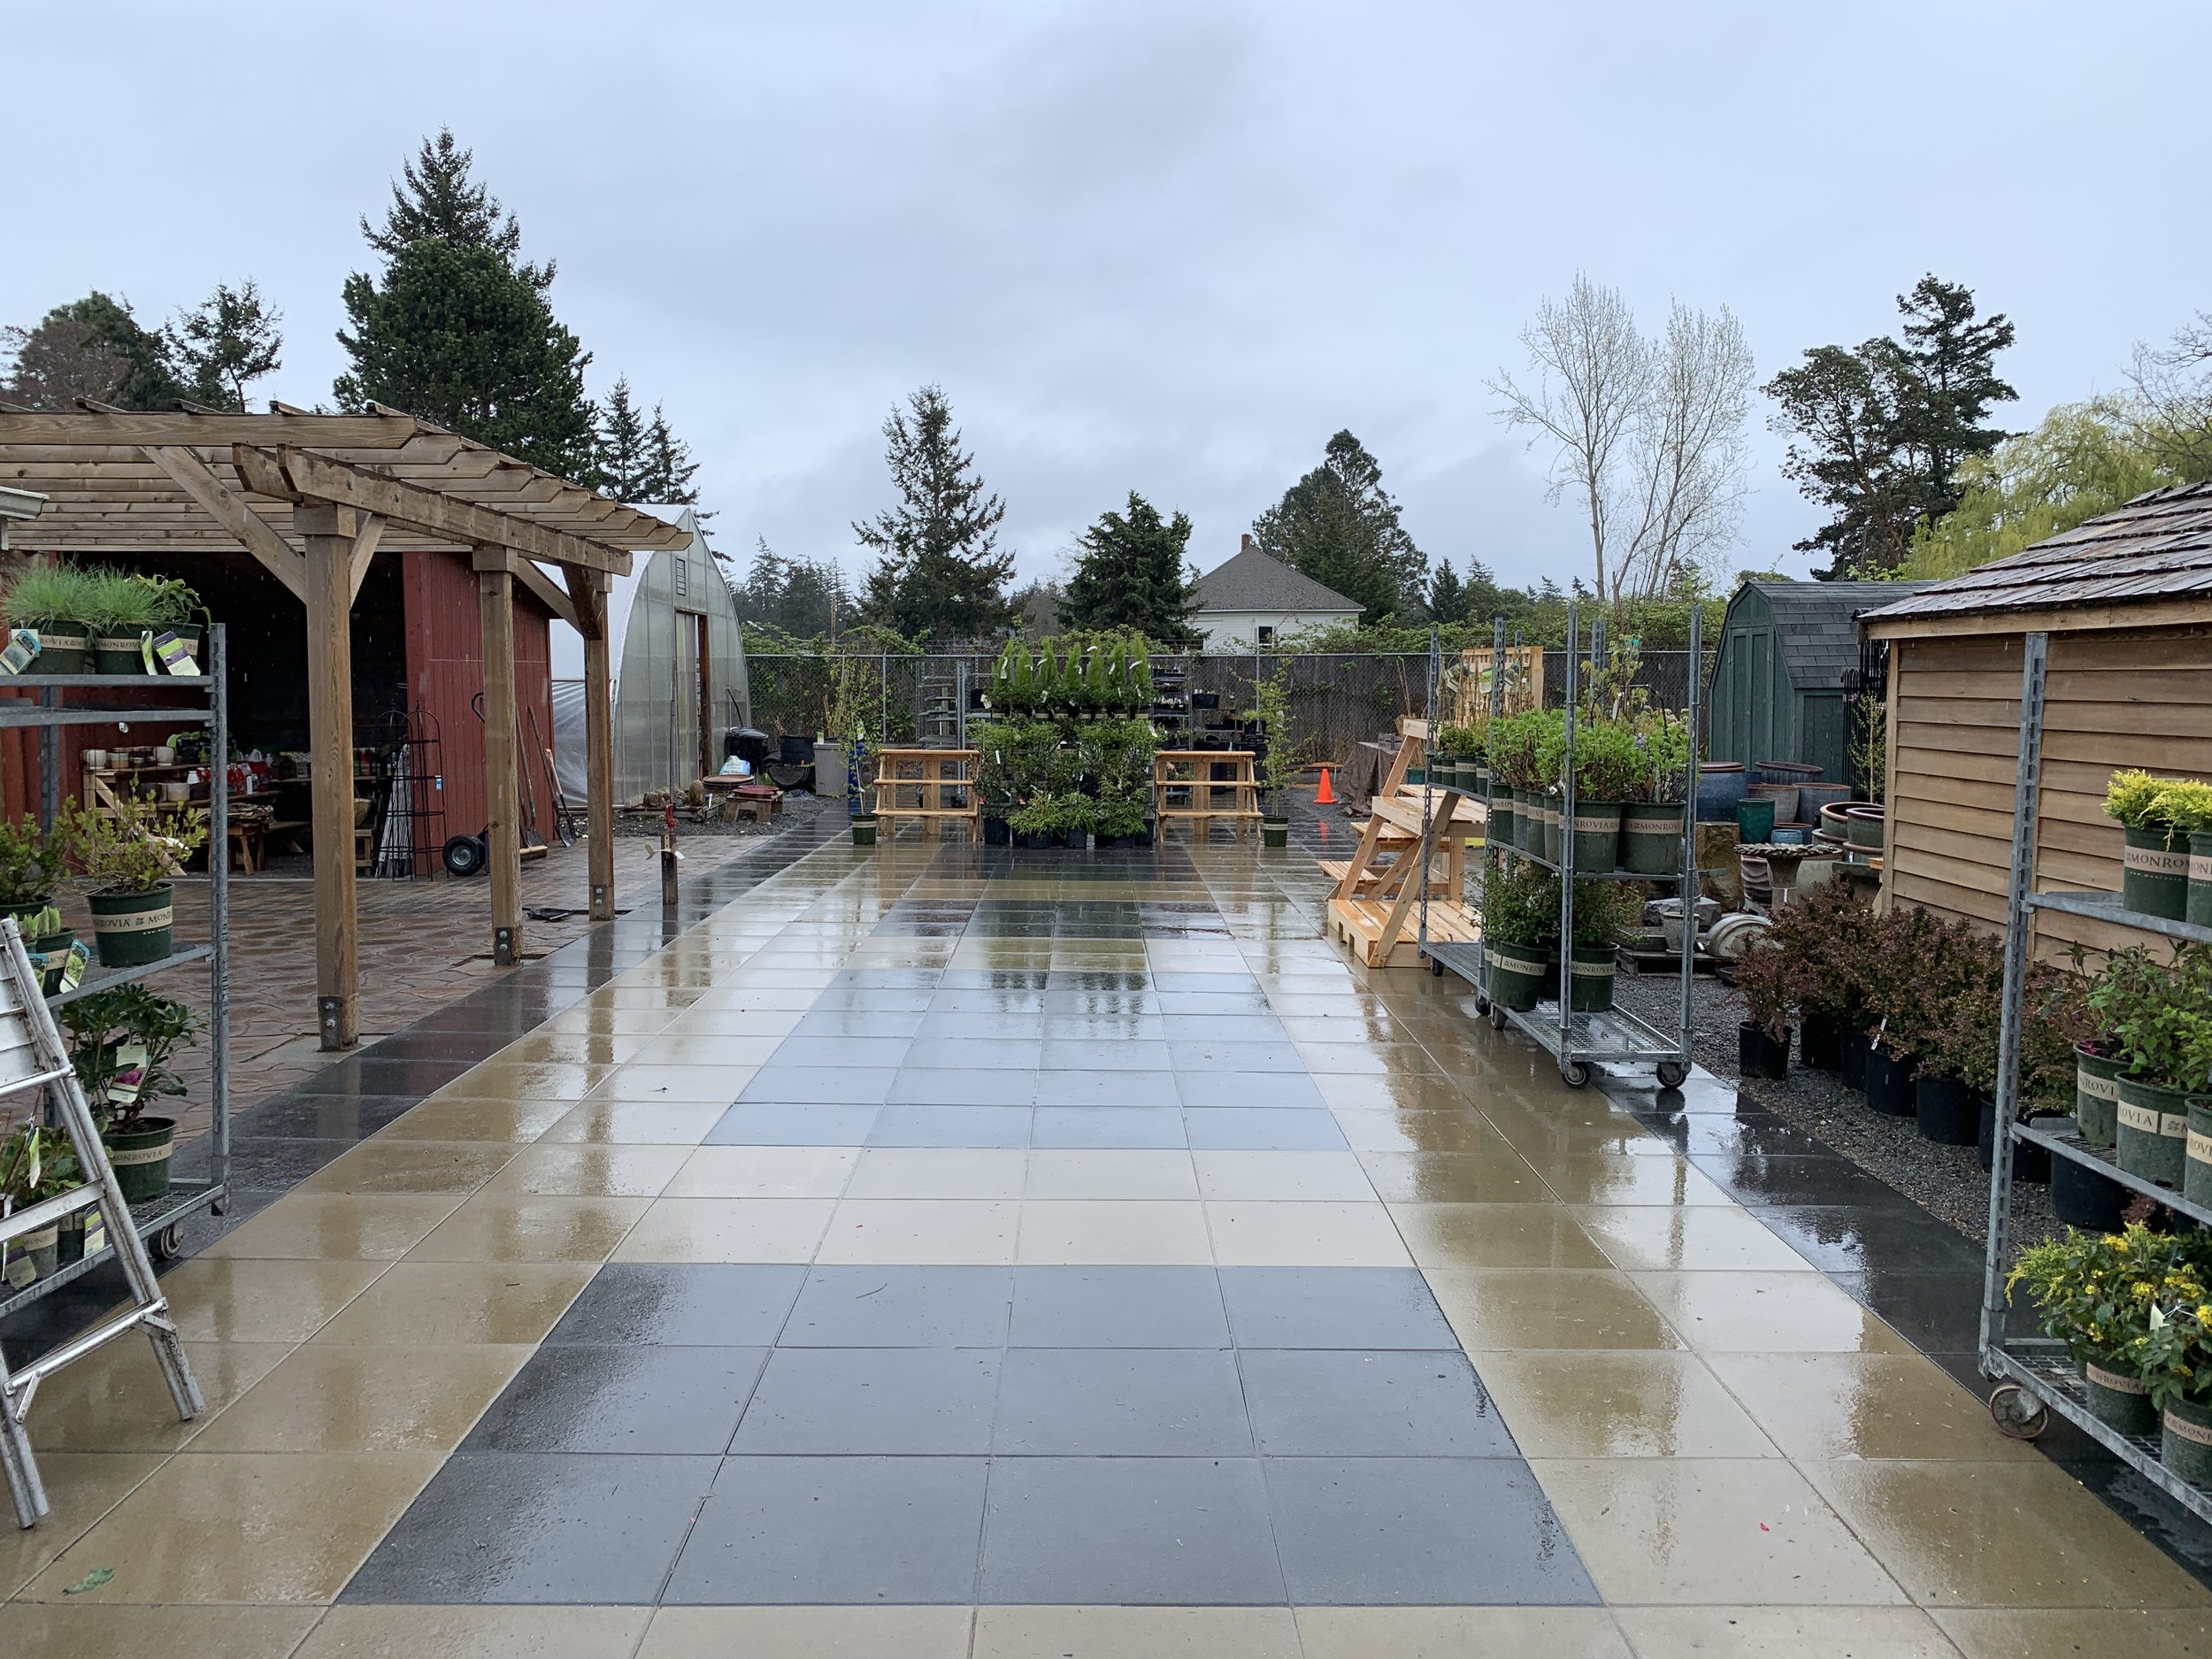 The pavers lead guests from the parking lot to the main entrance and through the entire nursery.